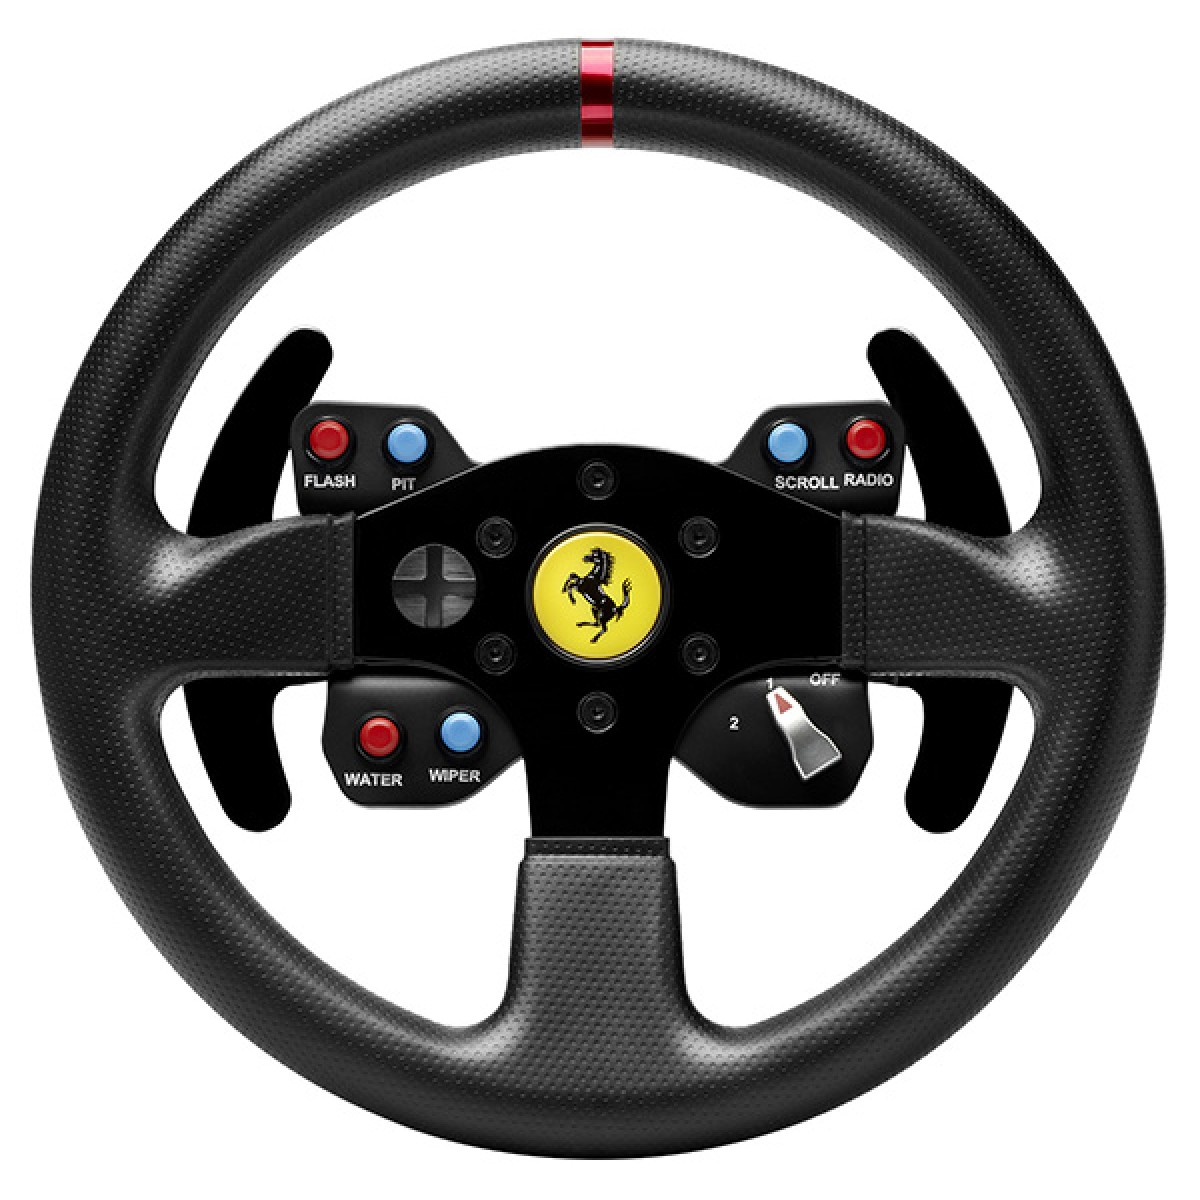 Thrustmaster Ferrari GTE 458 Add-On Wheel - pour T500 et TX wheel  (PC, PS3, Xbox One)